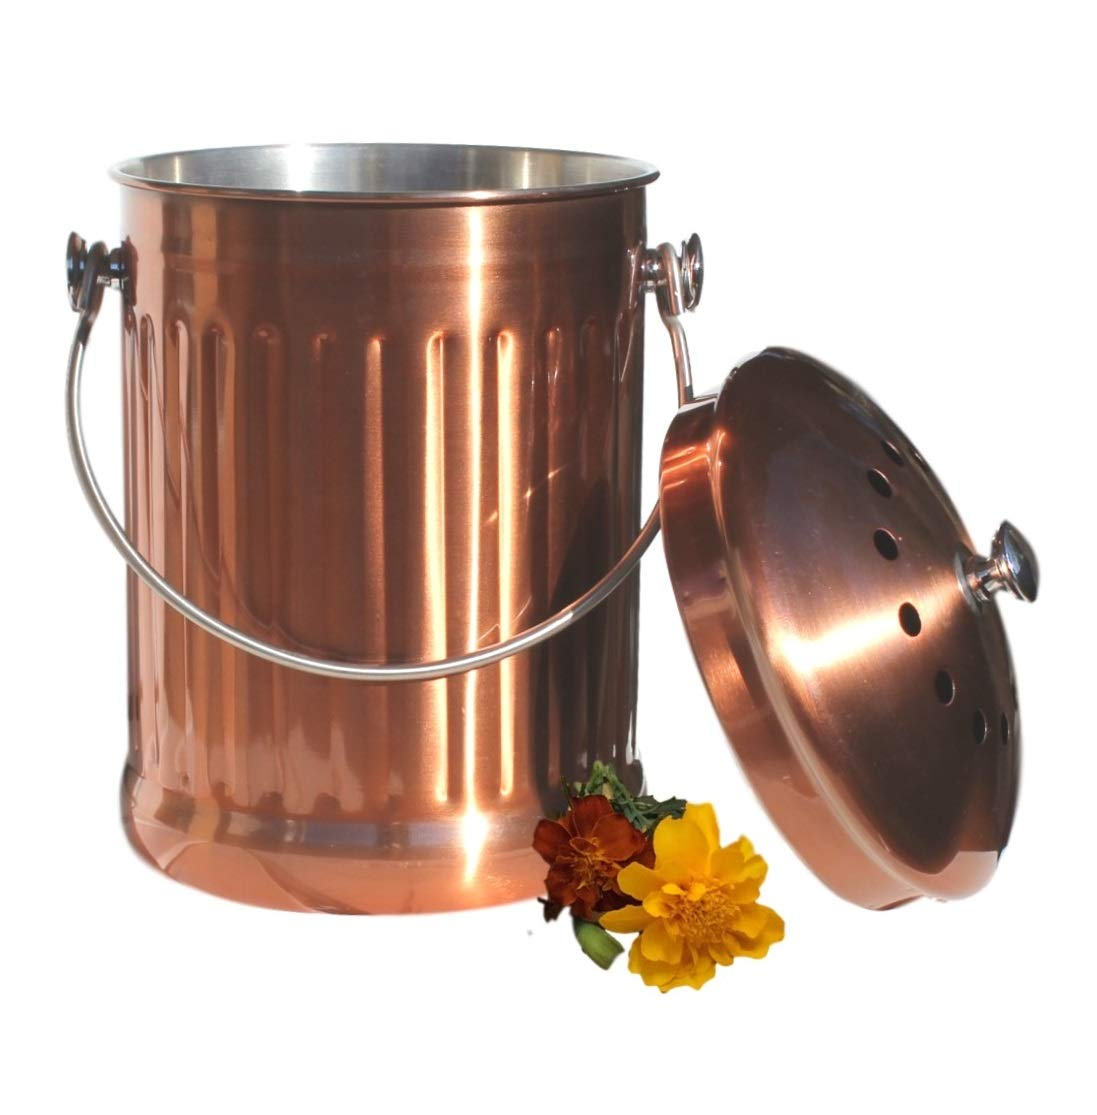 Kitchen Compost Pail Bin for Countertop - Large Capacity 1.5 Gallon Food Scrap Container, Leak proof Copper Coated Stainless Steel - Includes 1 Year of Charcoal Filters & Compost Bags by Gardenatomy (Image #5)